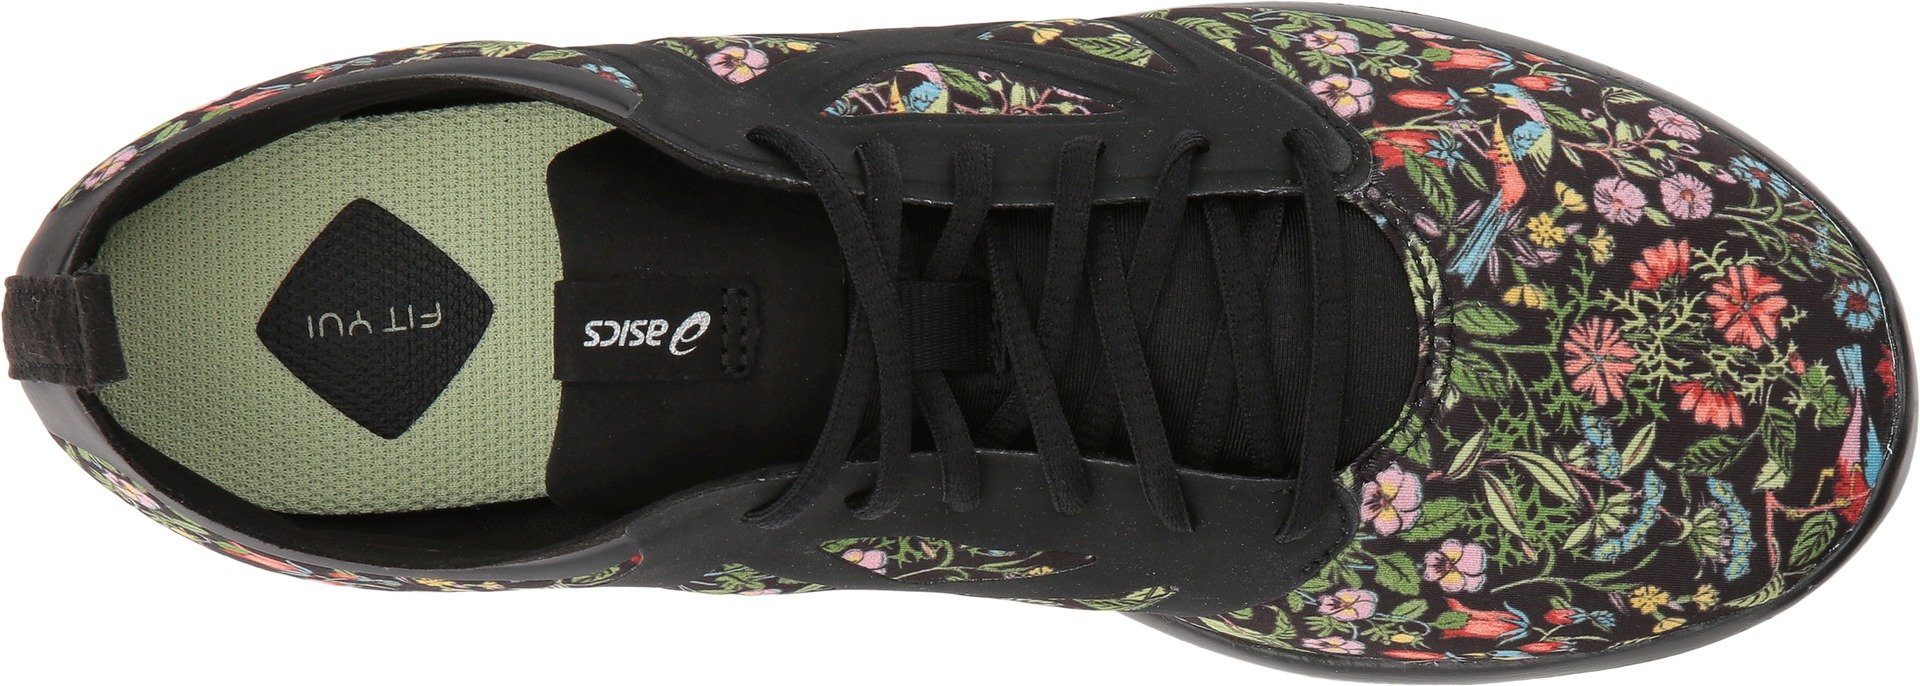 ASICS Women's Gel-Fit Yui 2 SE Black/Limelight/Silver 8 B US by ASICS (Image #2)